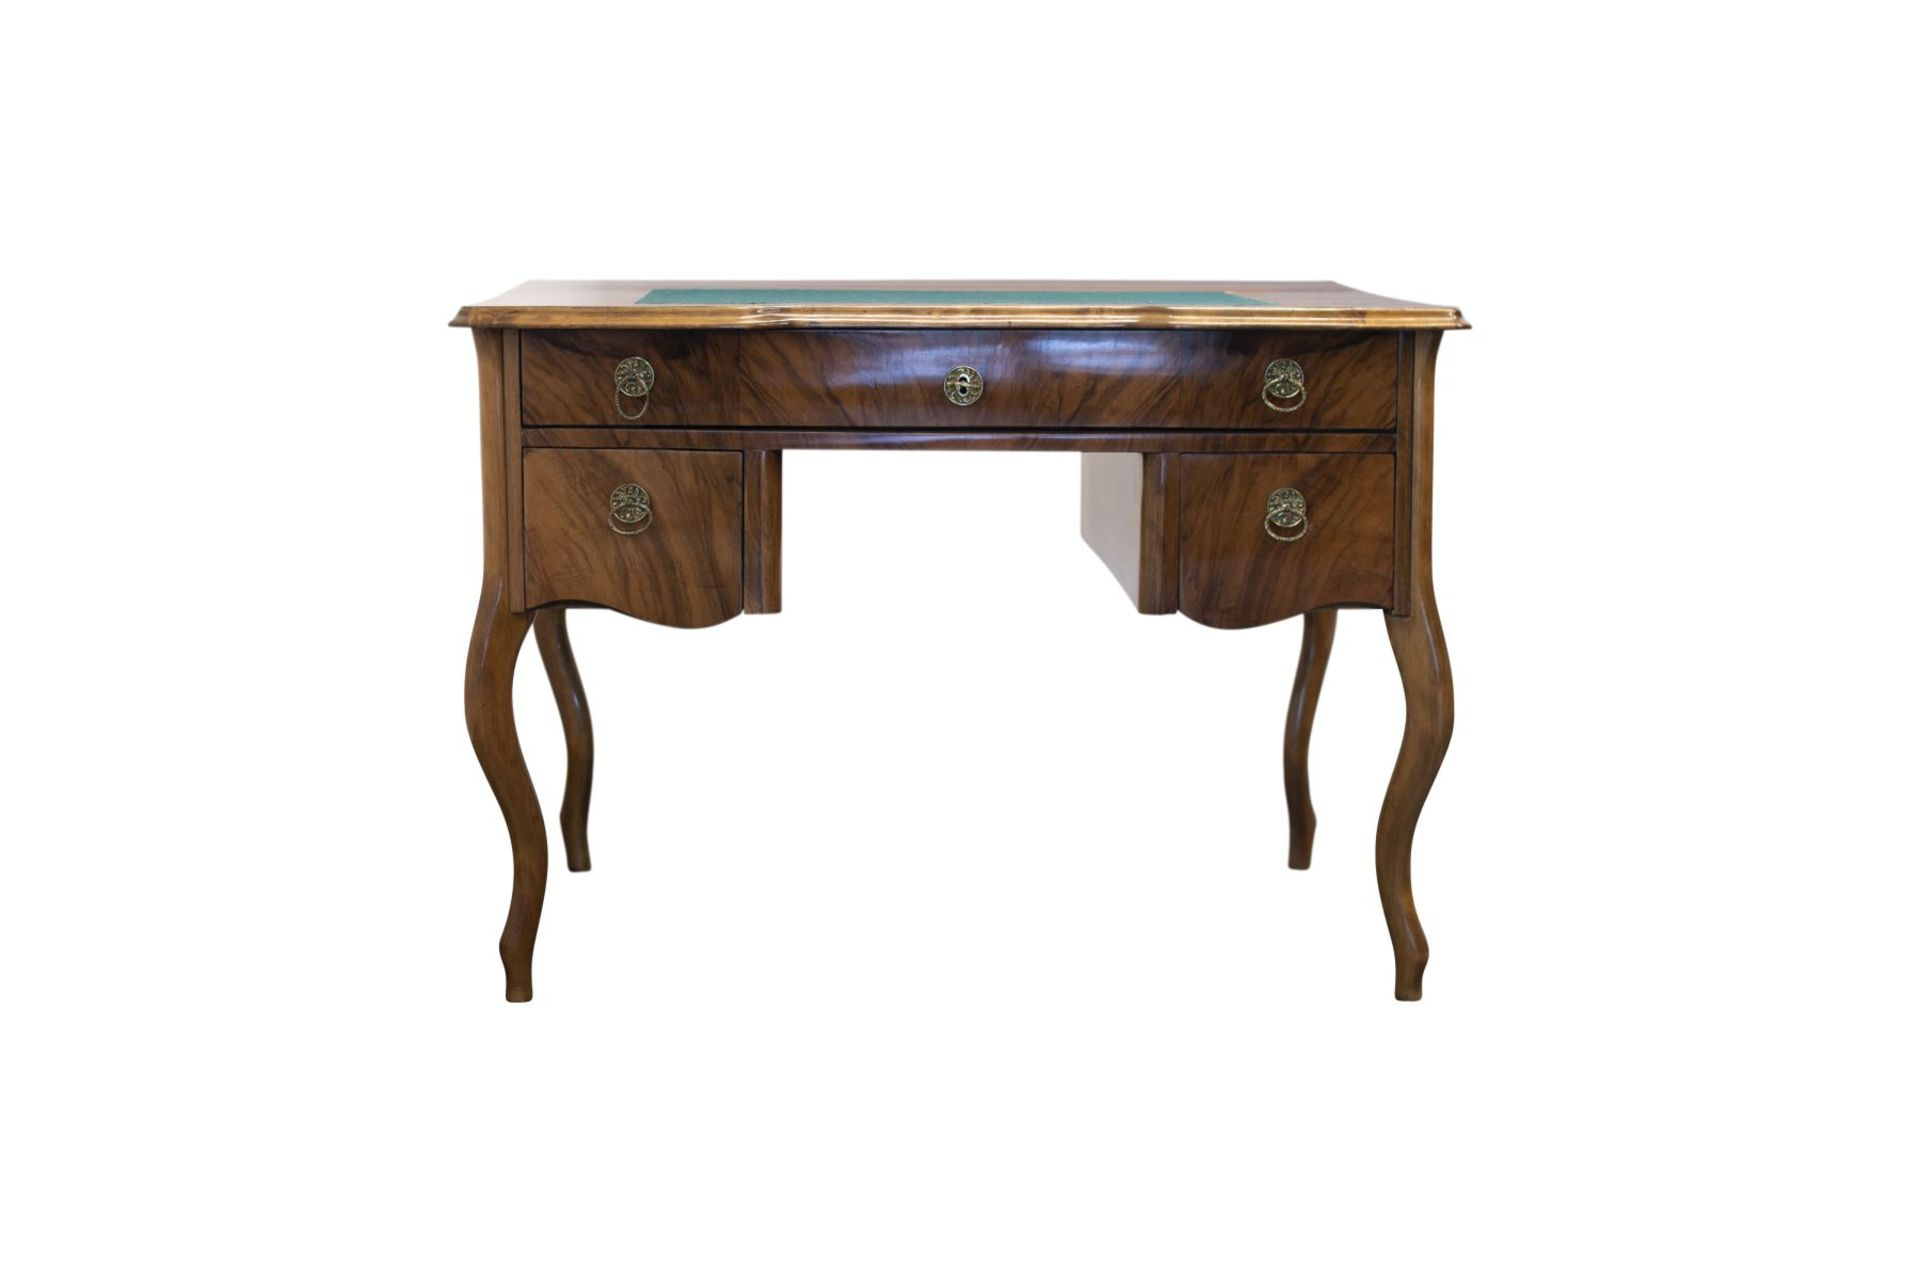 Biedermeier style desk, second half of the 19th century - Image 4 of 4